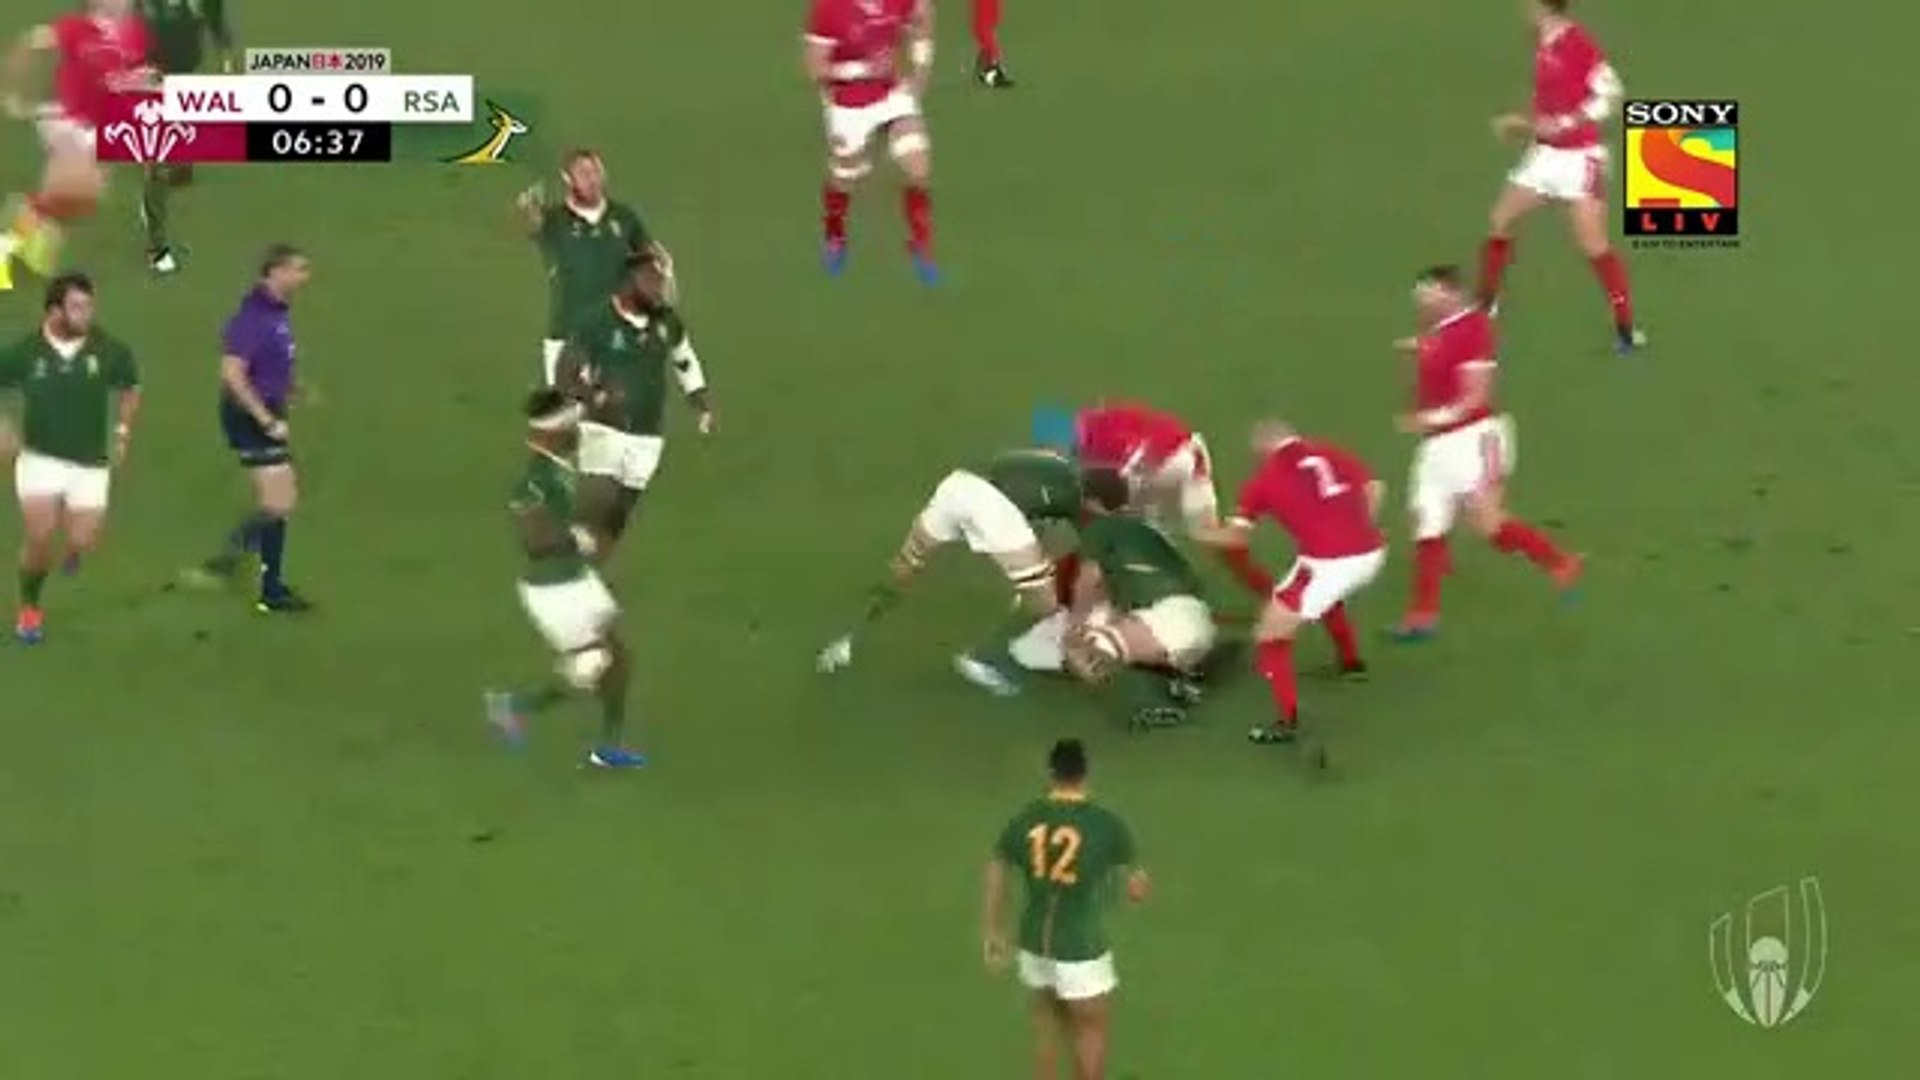 Wales vs South Africa Semi-Final Extended Highlights 2019 Rugby World Cup, 27th October